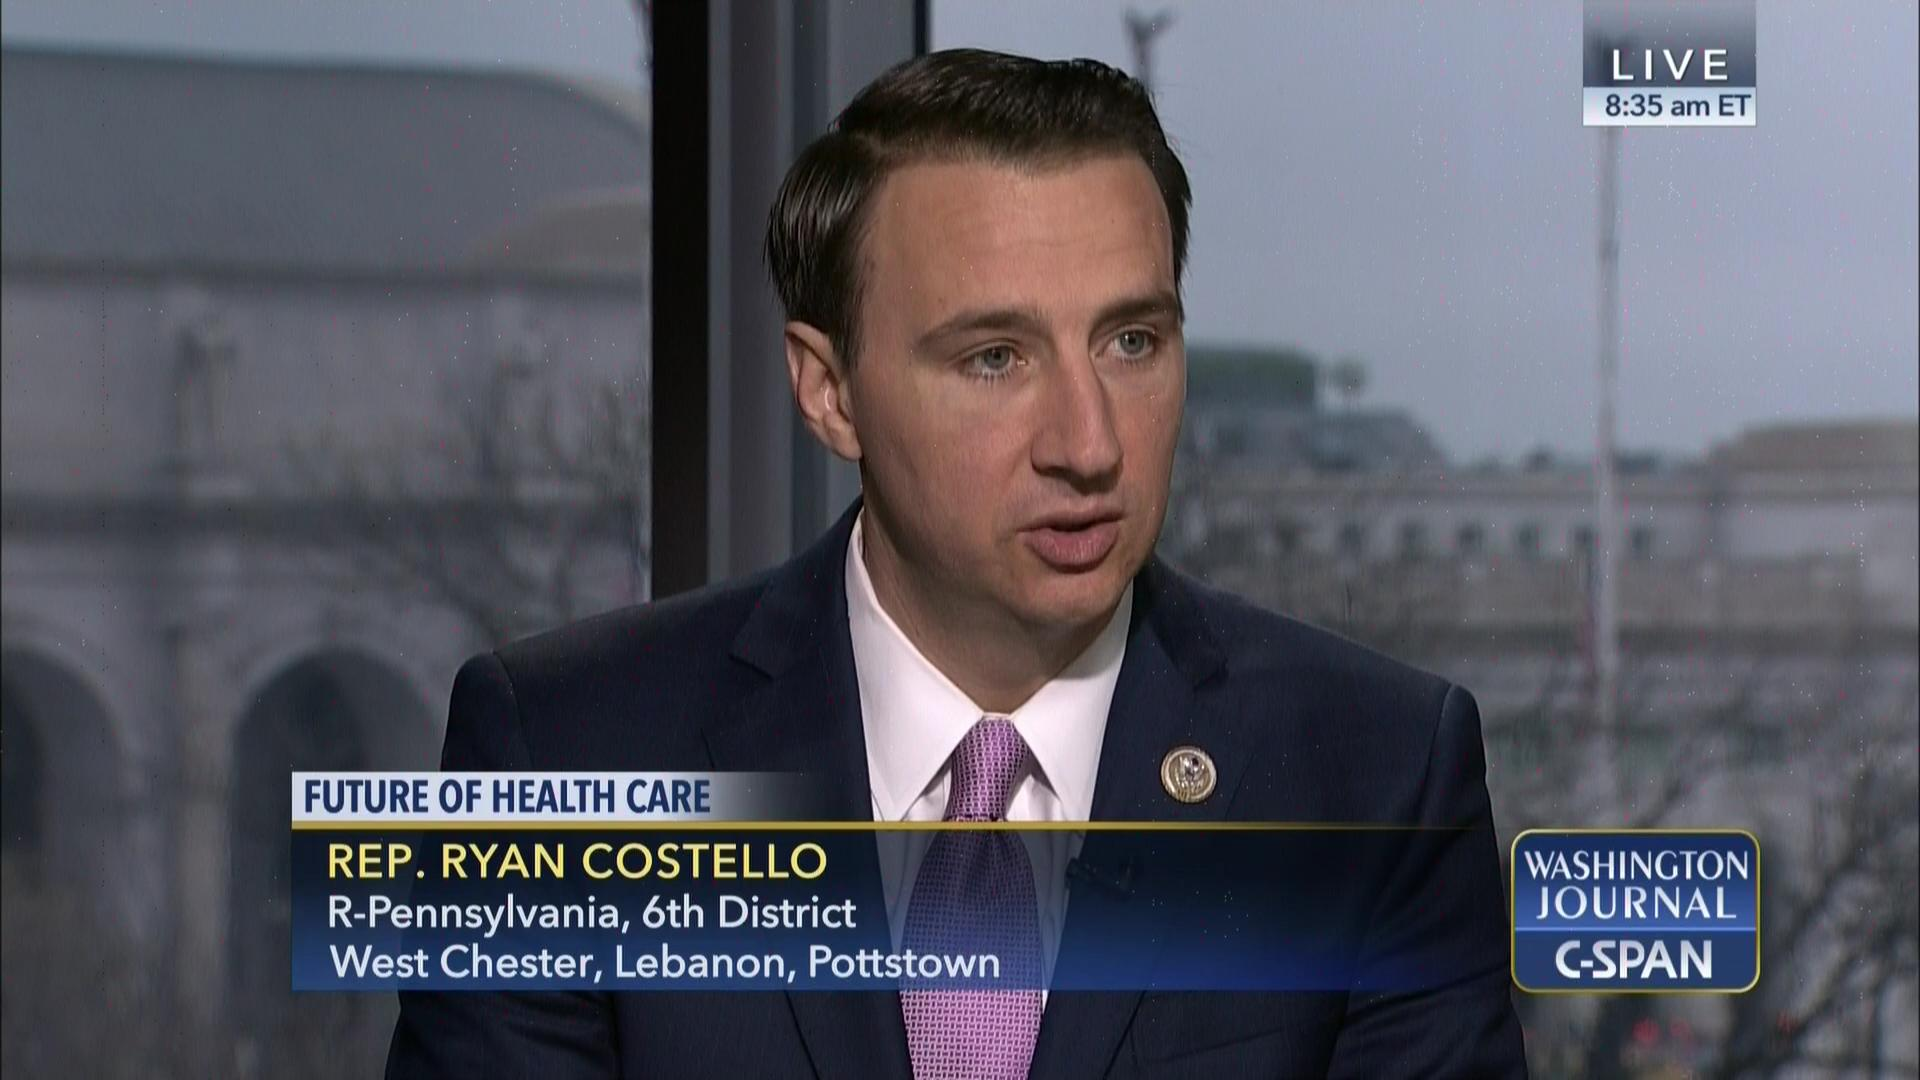 Image result for PHOTO OF REP COSTELLO